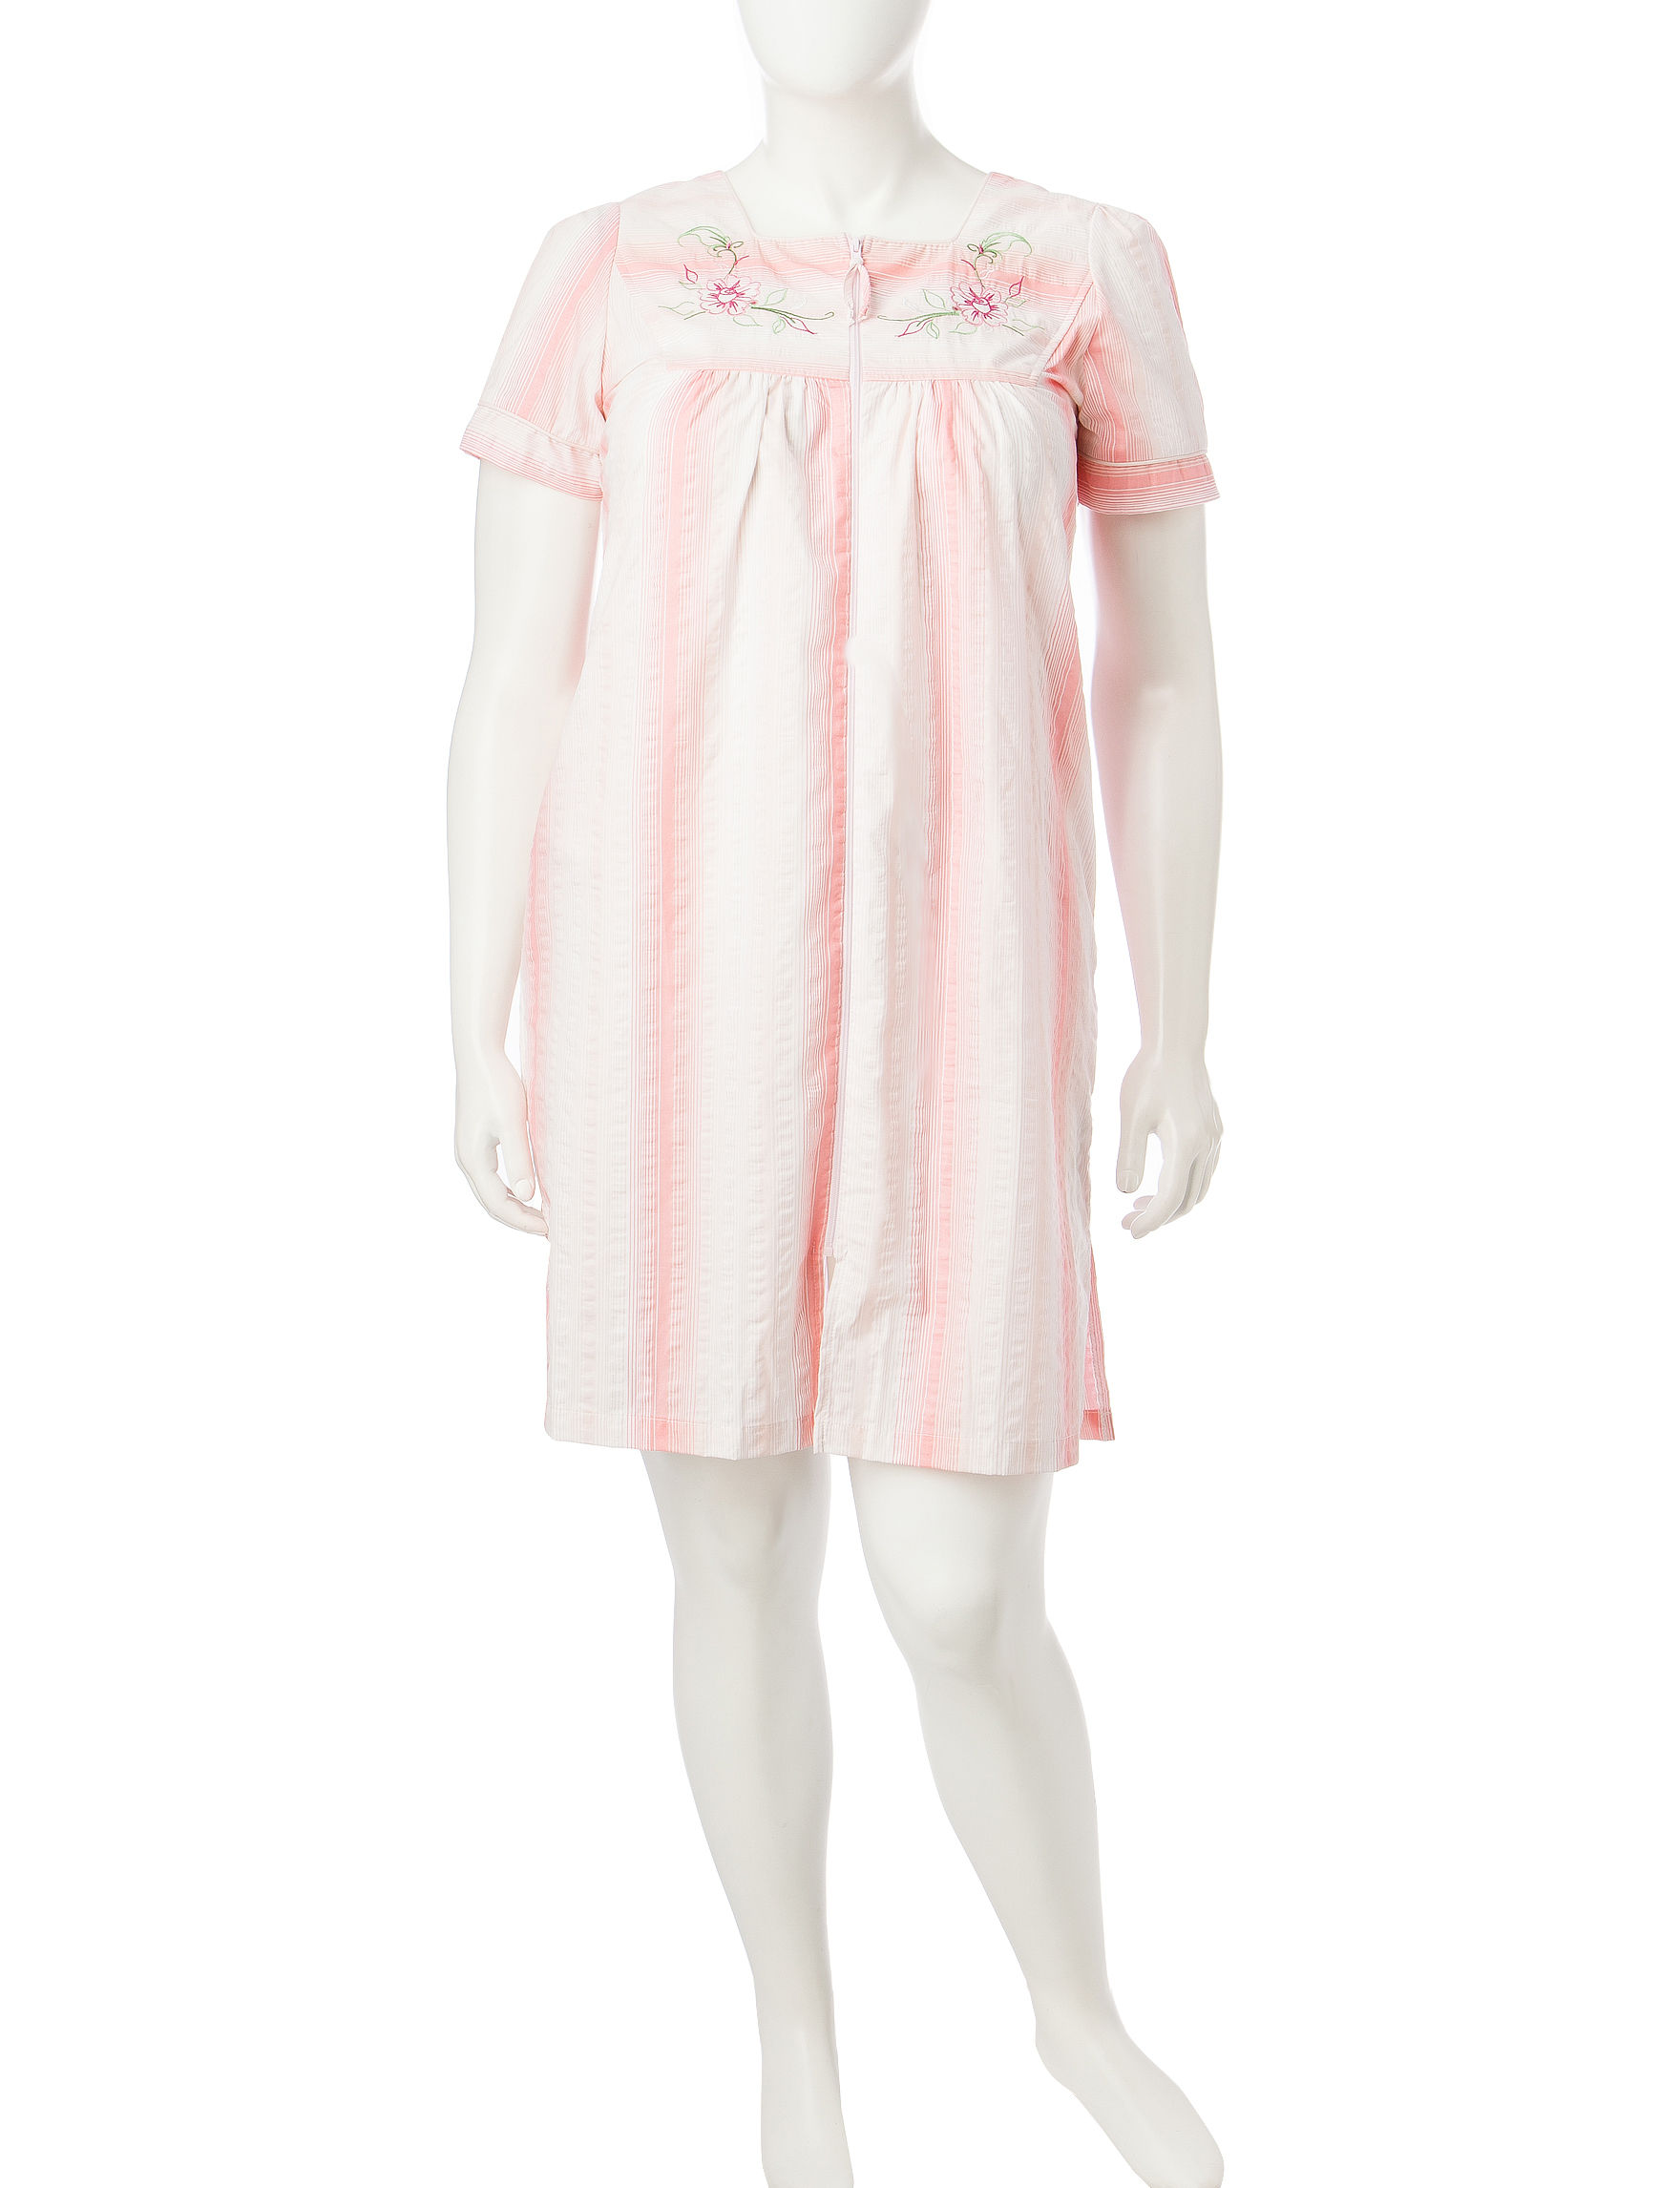 Rebecca Malone Pink Robes, Wraps & Dusters